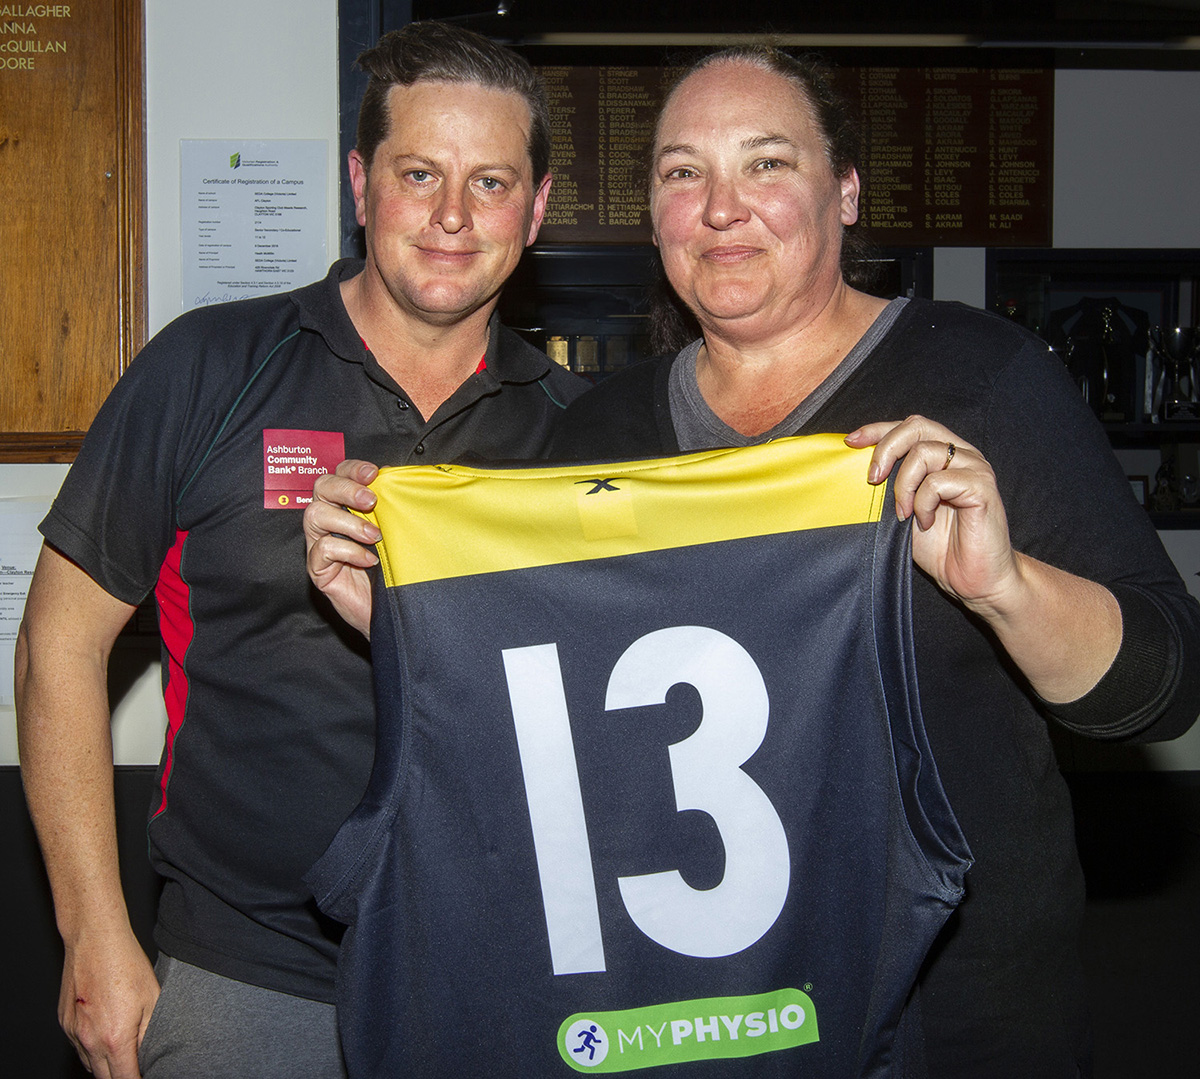 Jumper presentation night for season 2018. Sue Emery was overwhelmed with the moment, and overcome.